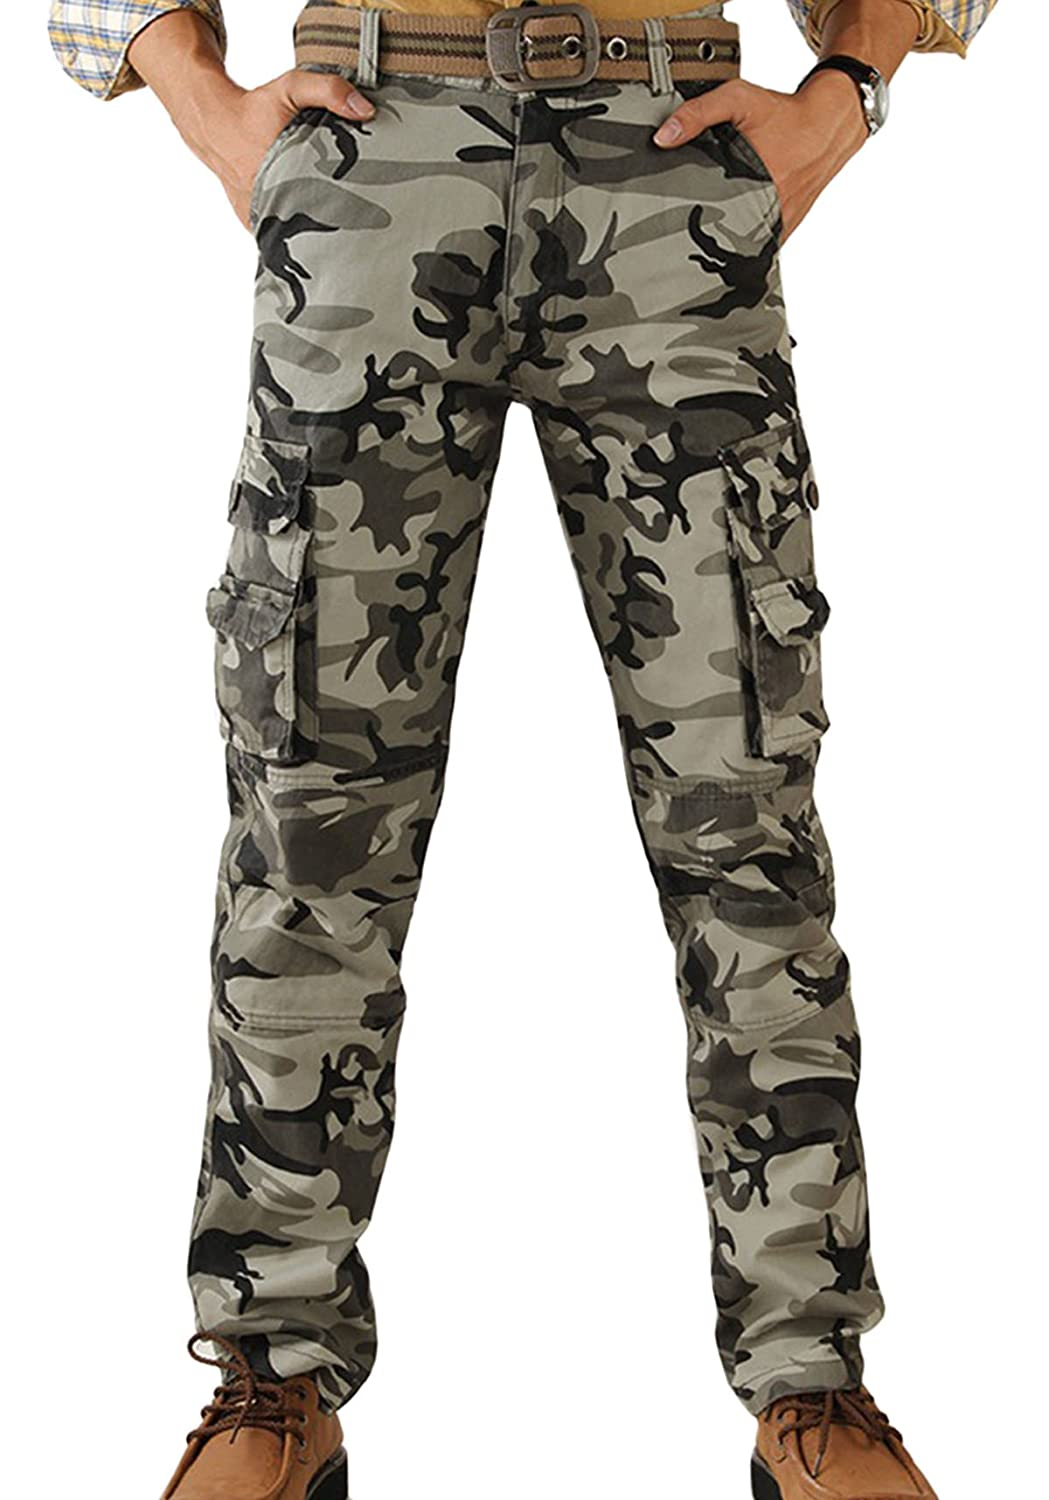 Amazon.com  Panegy Men s Camouflage Army Combat Wild Vintage Work Wear  Cargo Pants Hunting Jogger Trousers Camo 31  Clothing f981333d93a